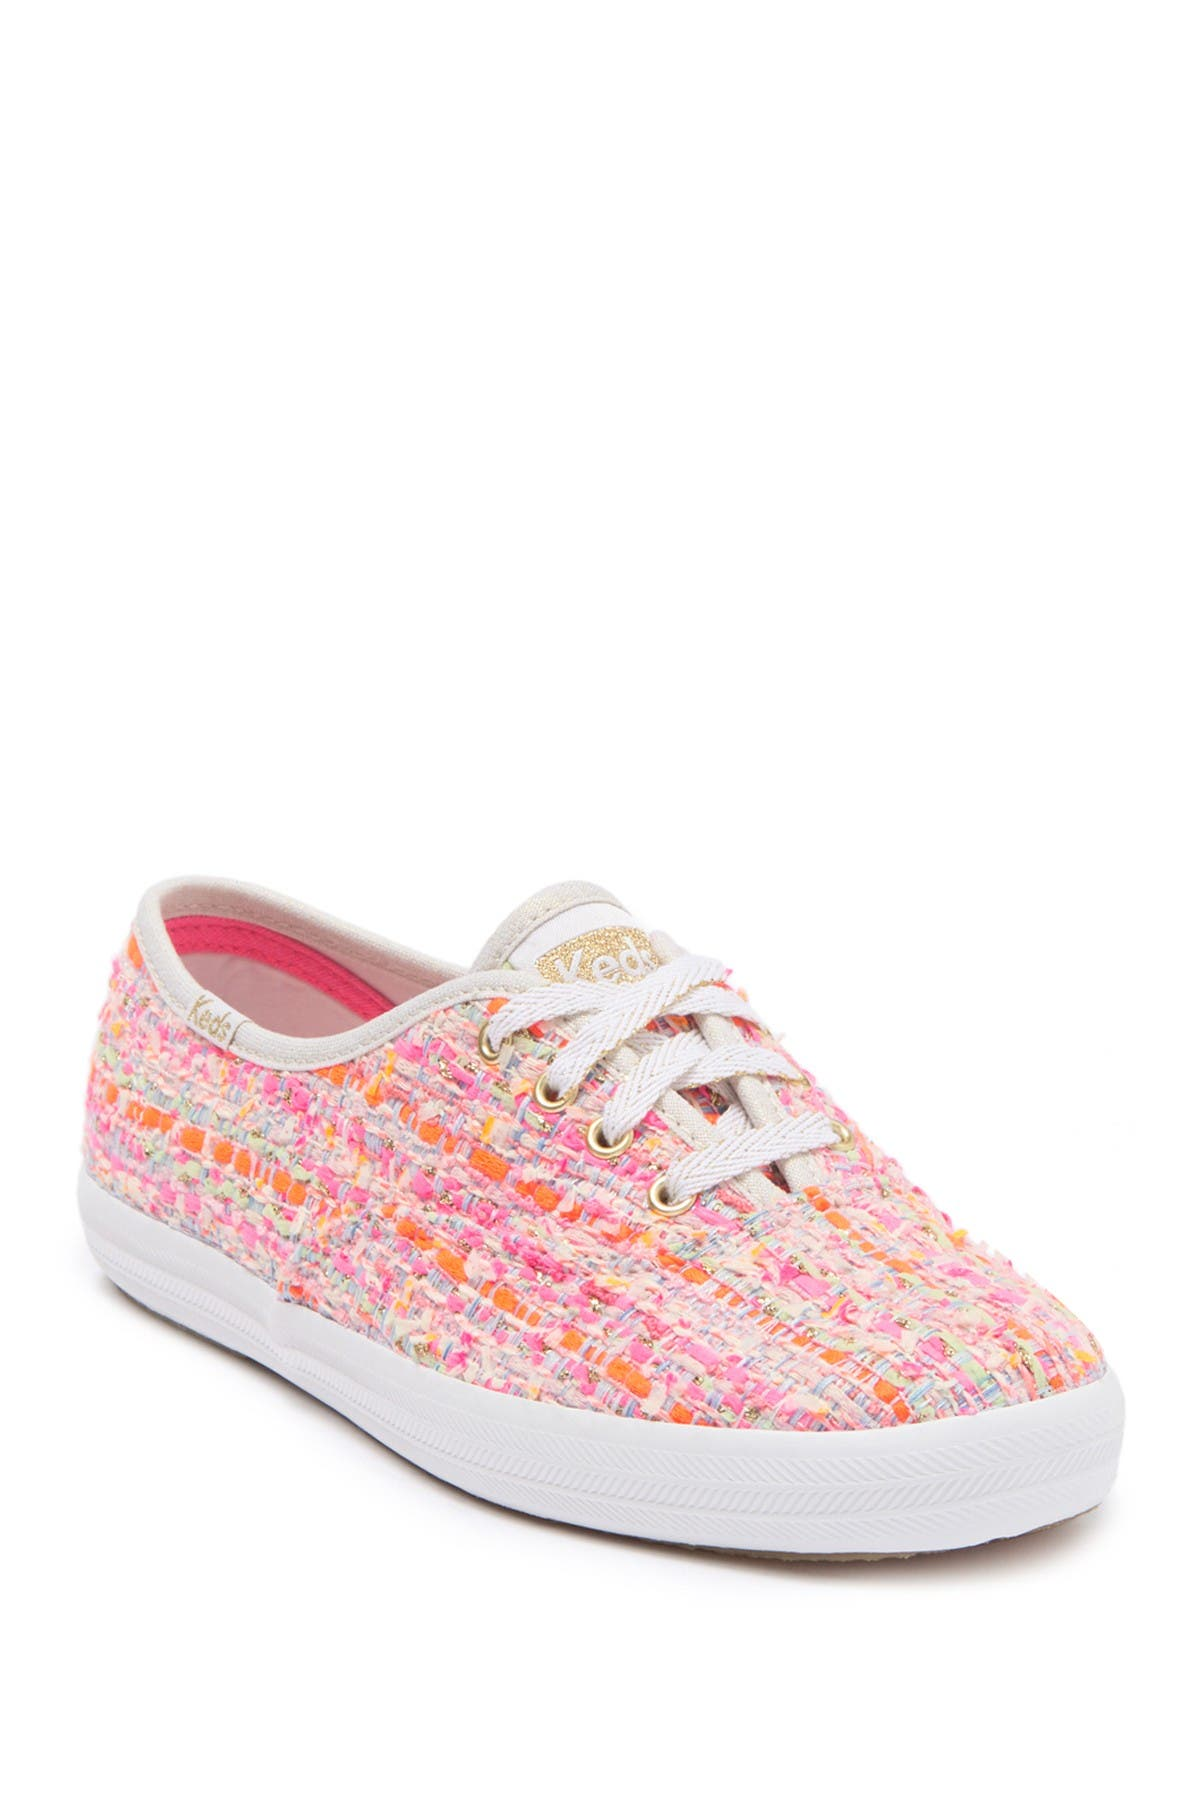 Image of Keds Oh Joy! Champion Woven Sneaker